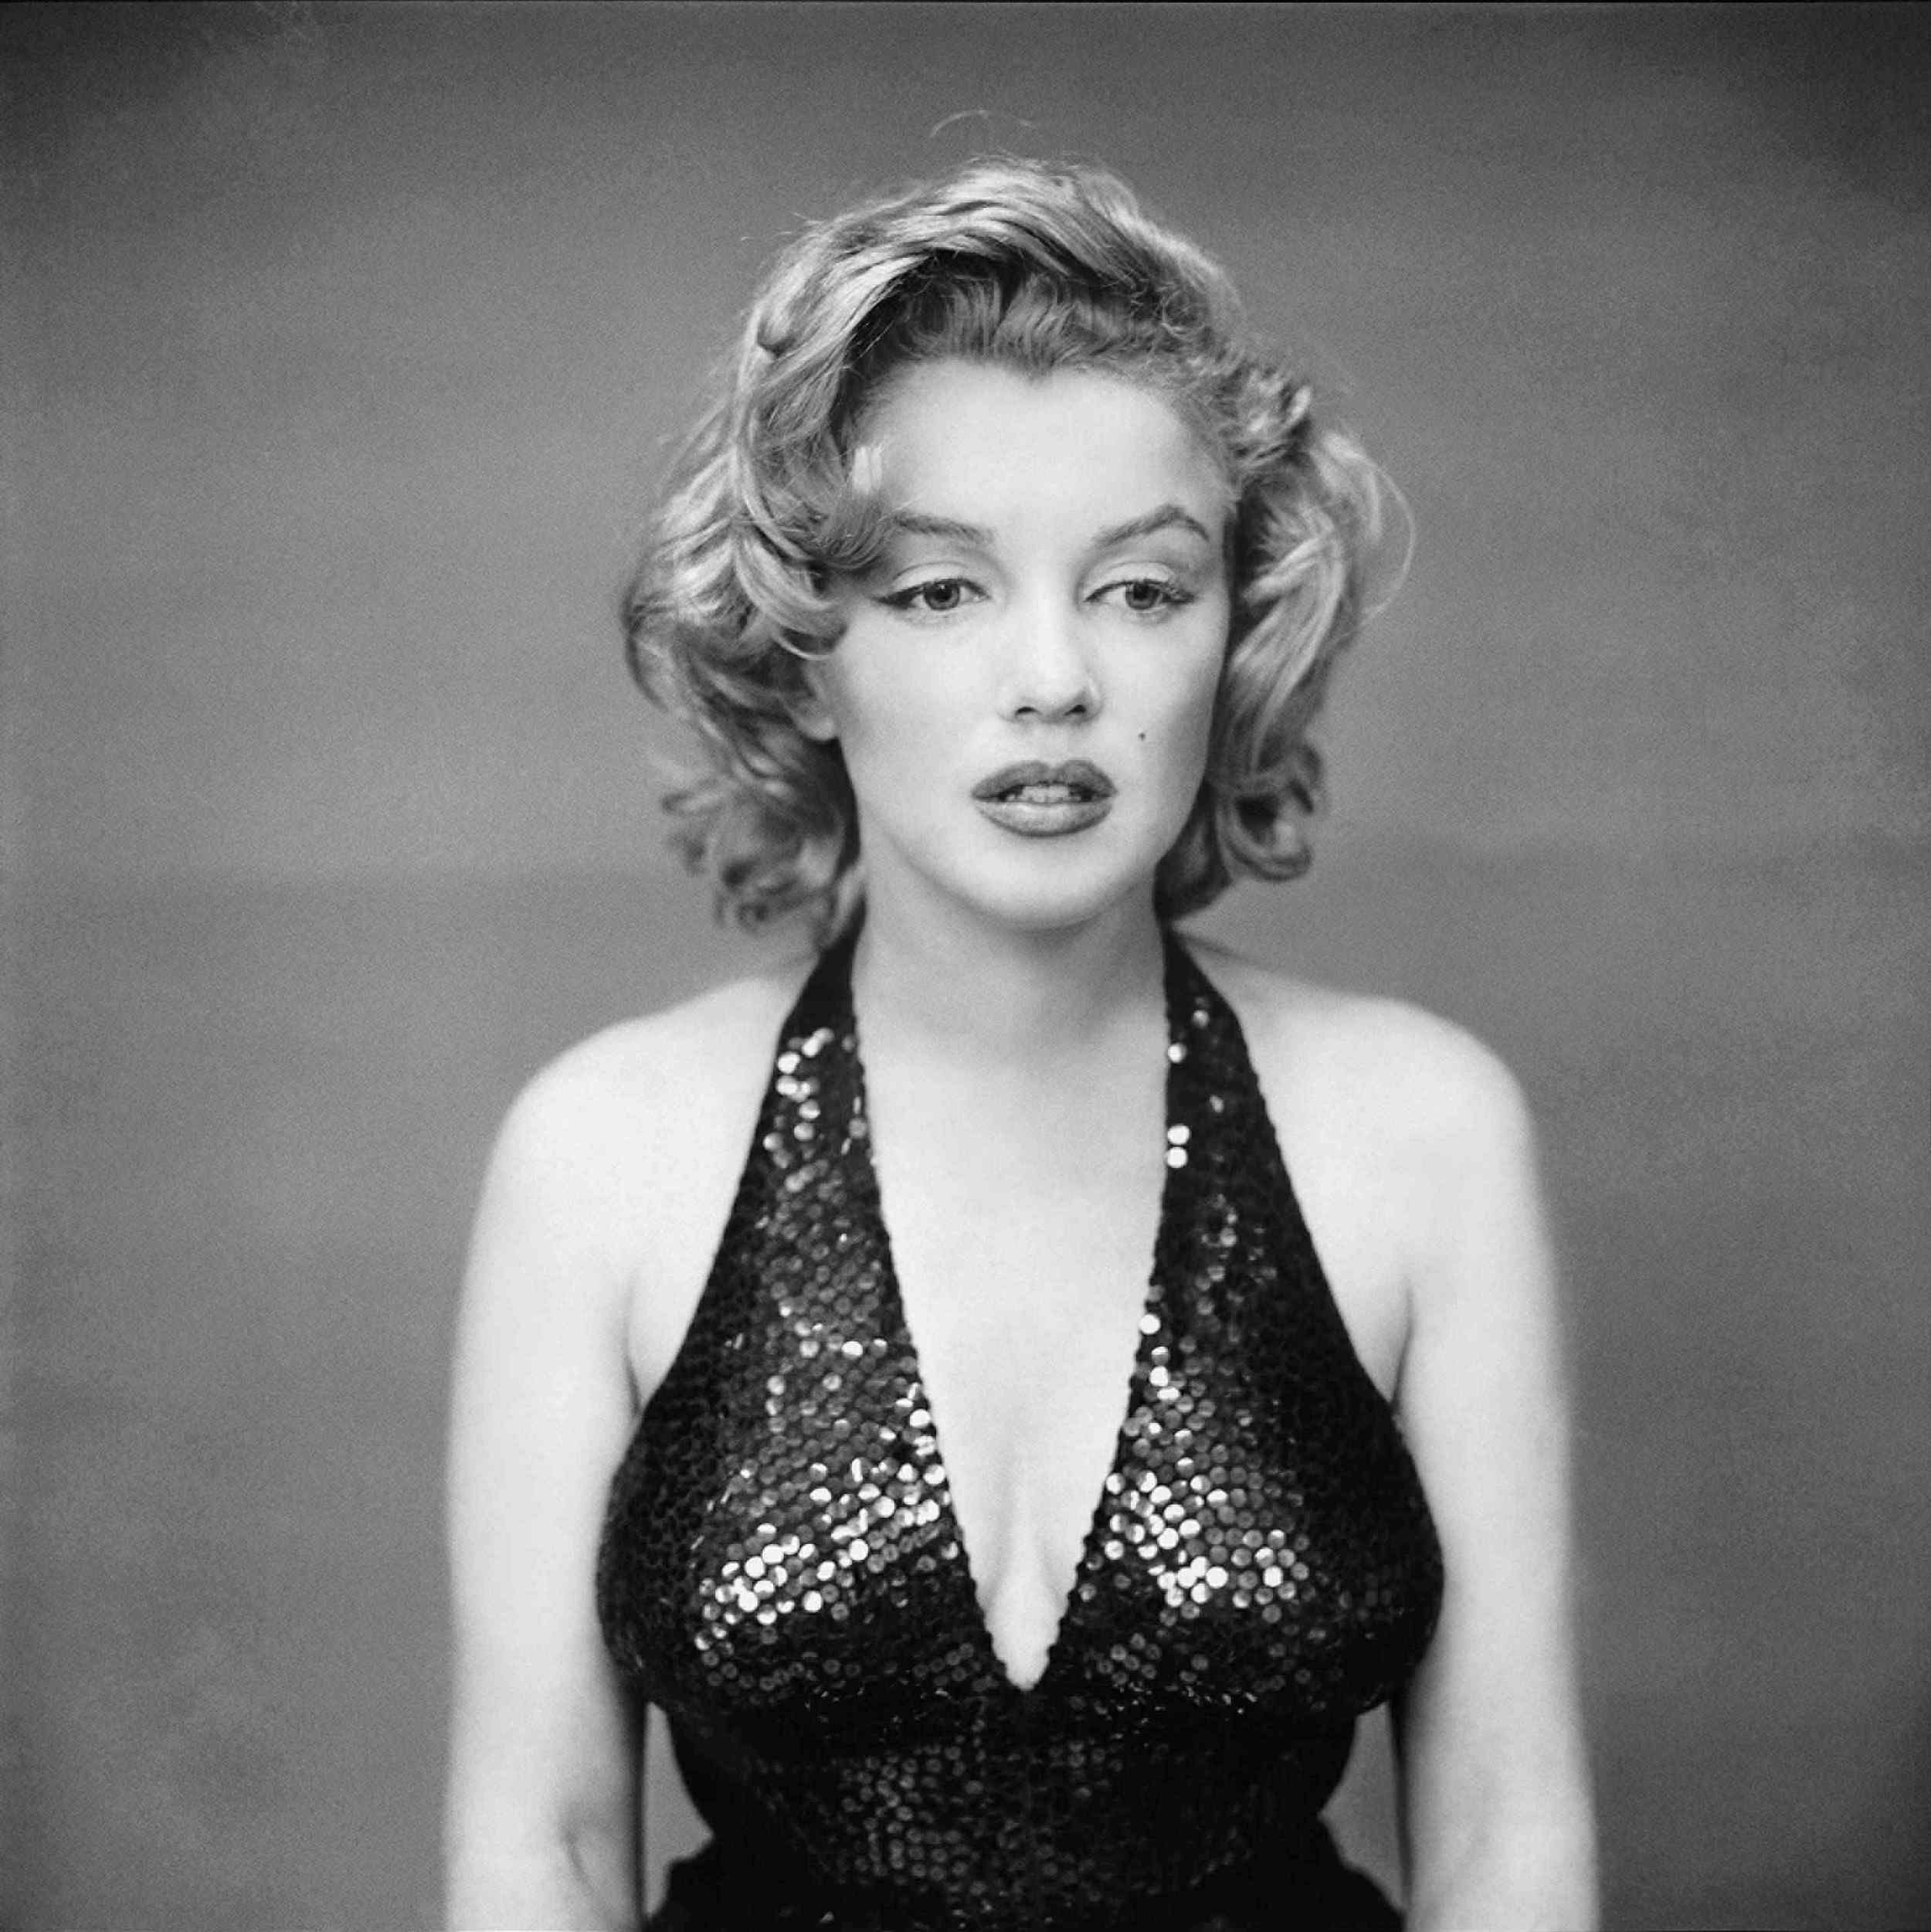 Marilyn-Monroe-Actress-New-York-City-1957-by-Richard-Avedon